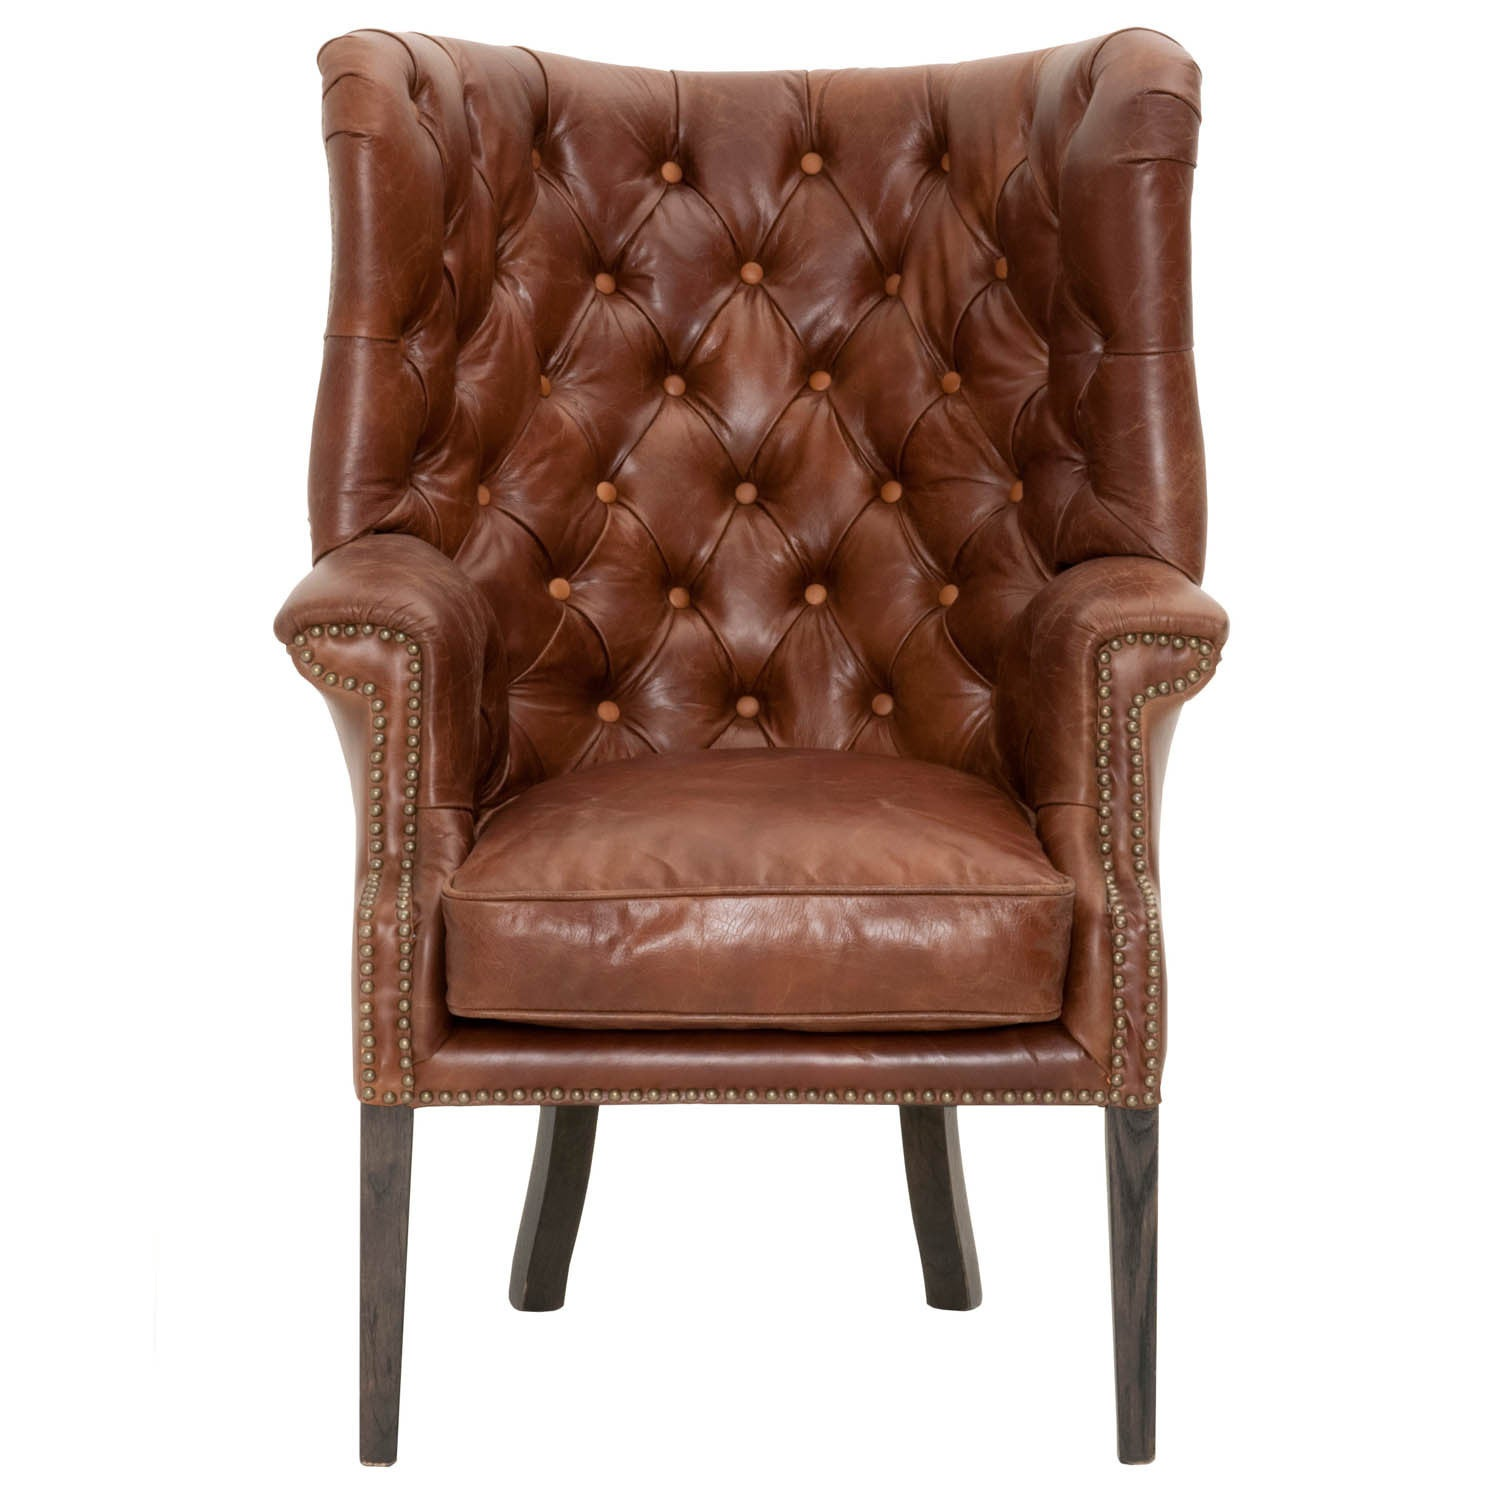 Gray Manor Zachary Club Chair (Chestnut), Brown (Leather)